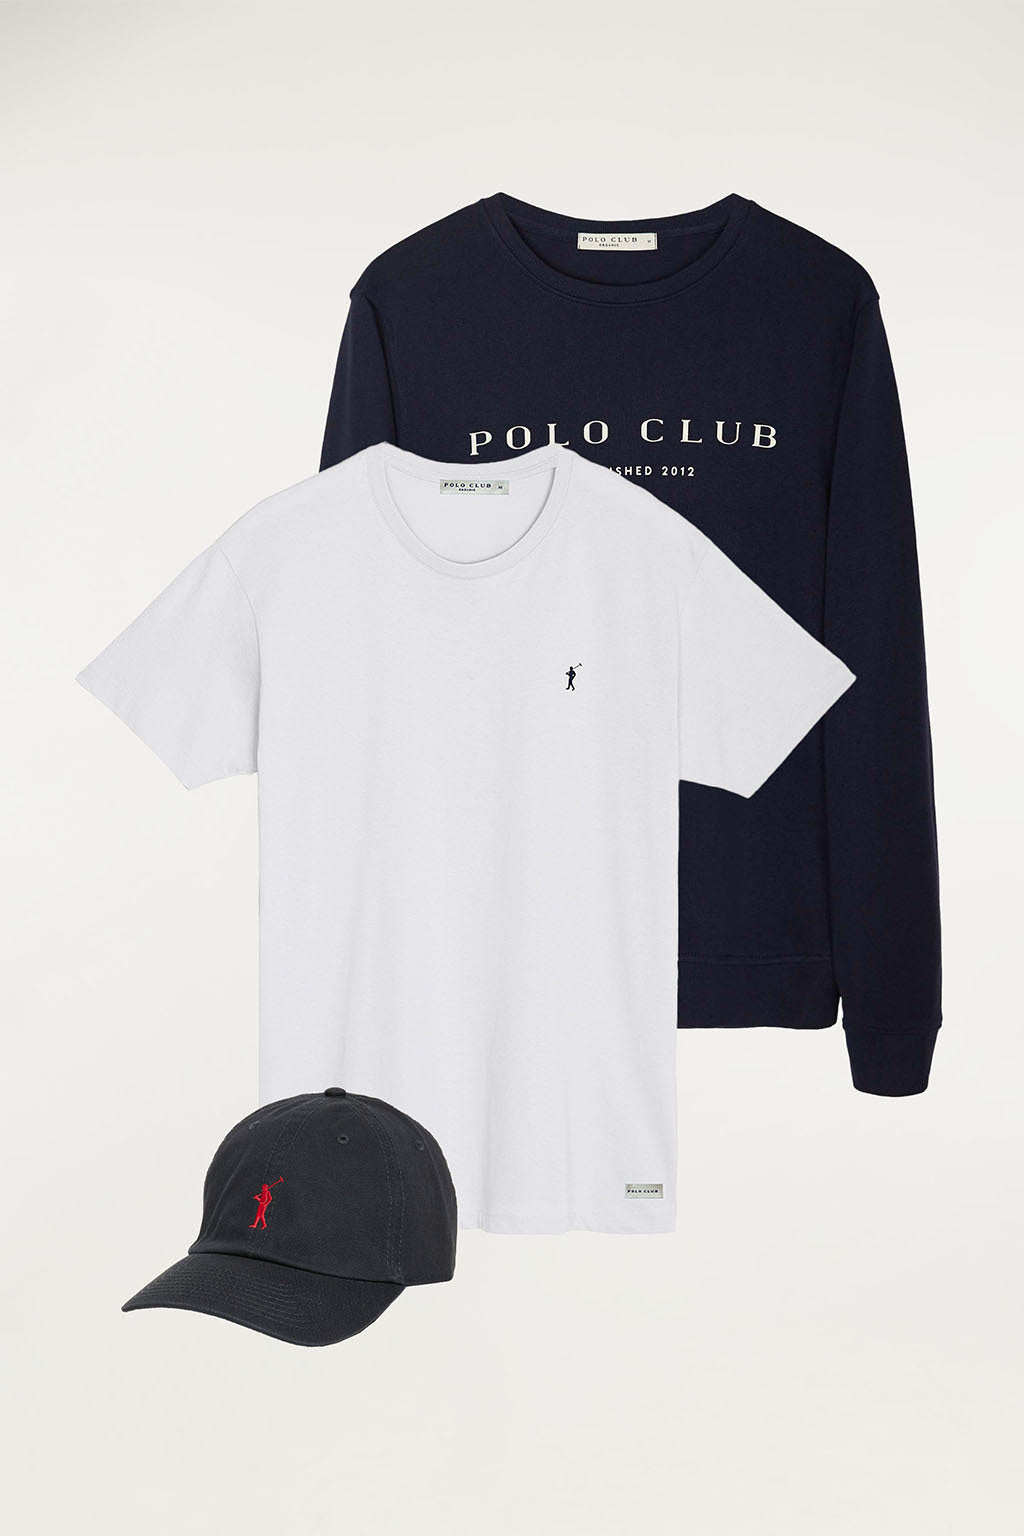 Sweatshirt, organic tee and cap with contrast detail pack